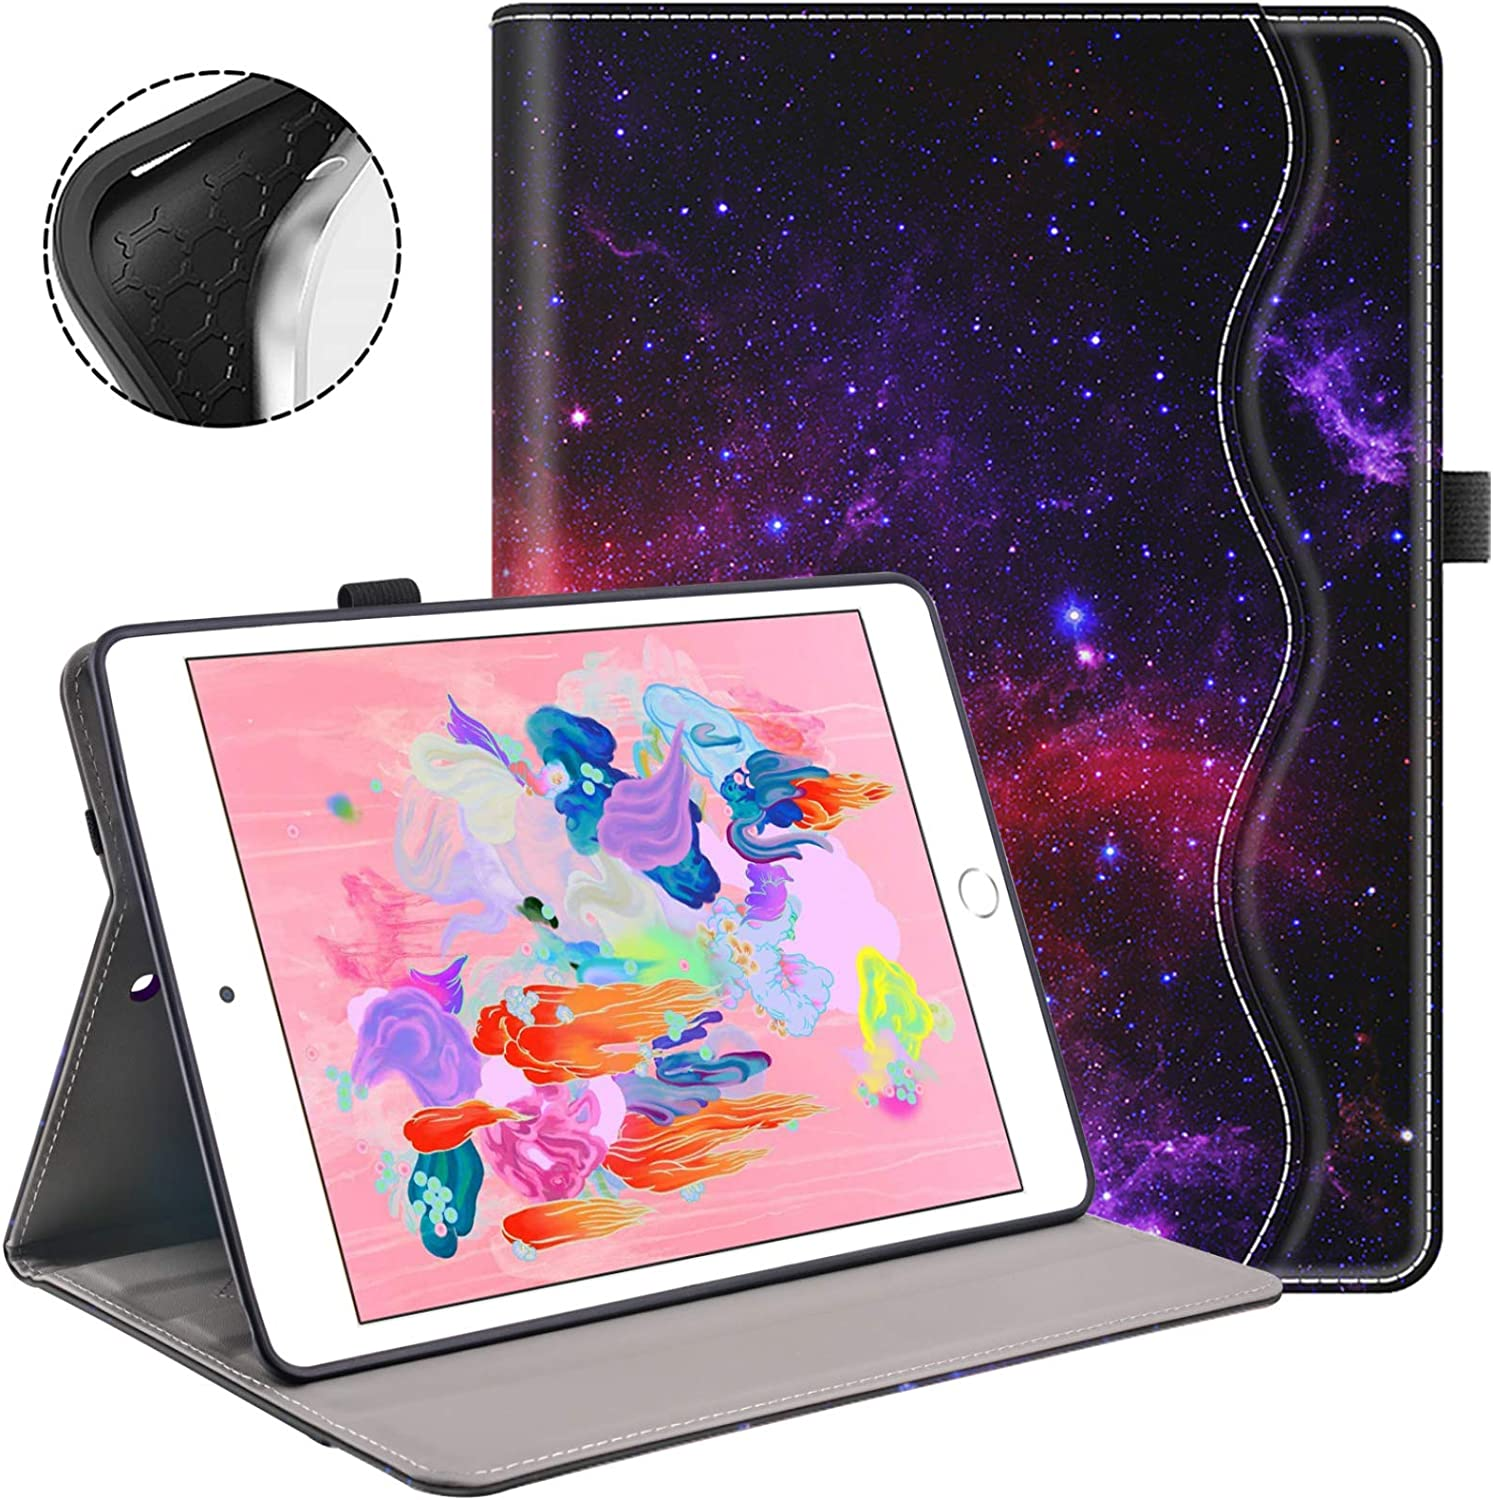 Case for iPad 9.7 Inch 2018/2017 iPad 6th/5th Generation Case with Pencil Holder Soft TPU Back, Auto Wake/Sleep and Multi-Angle Viewing Smart iPad Air/Air2 Cover